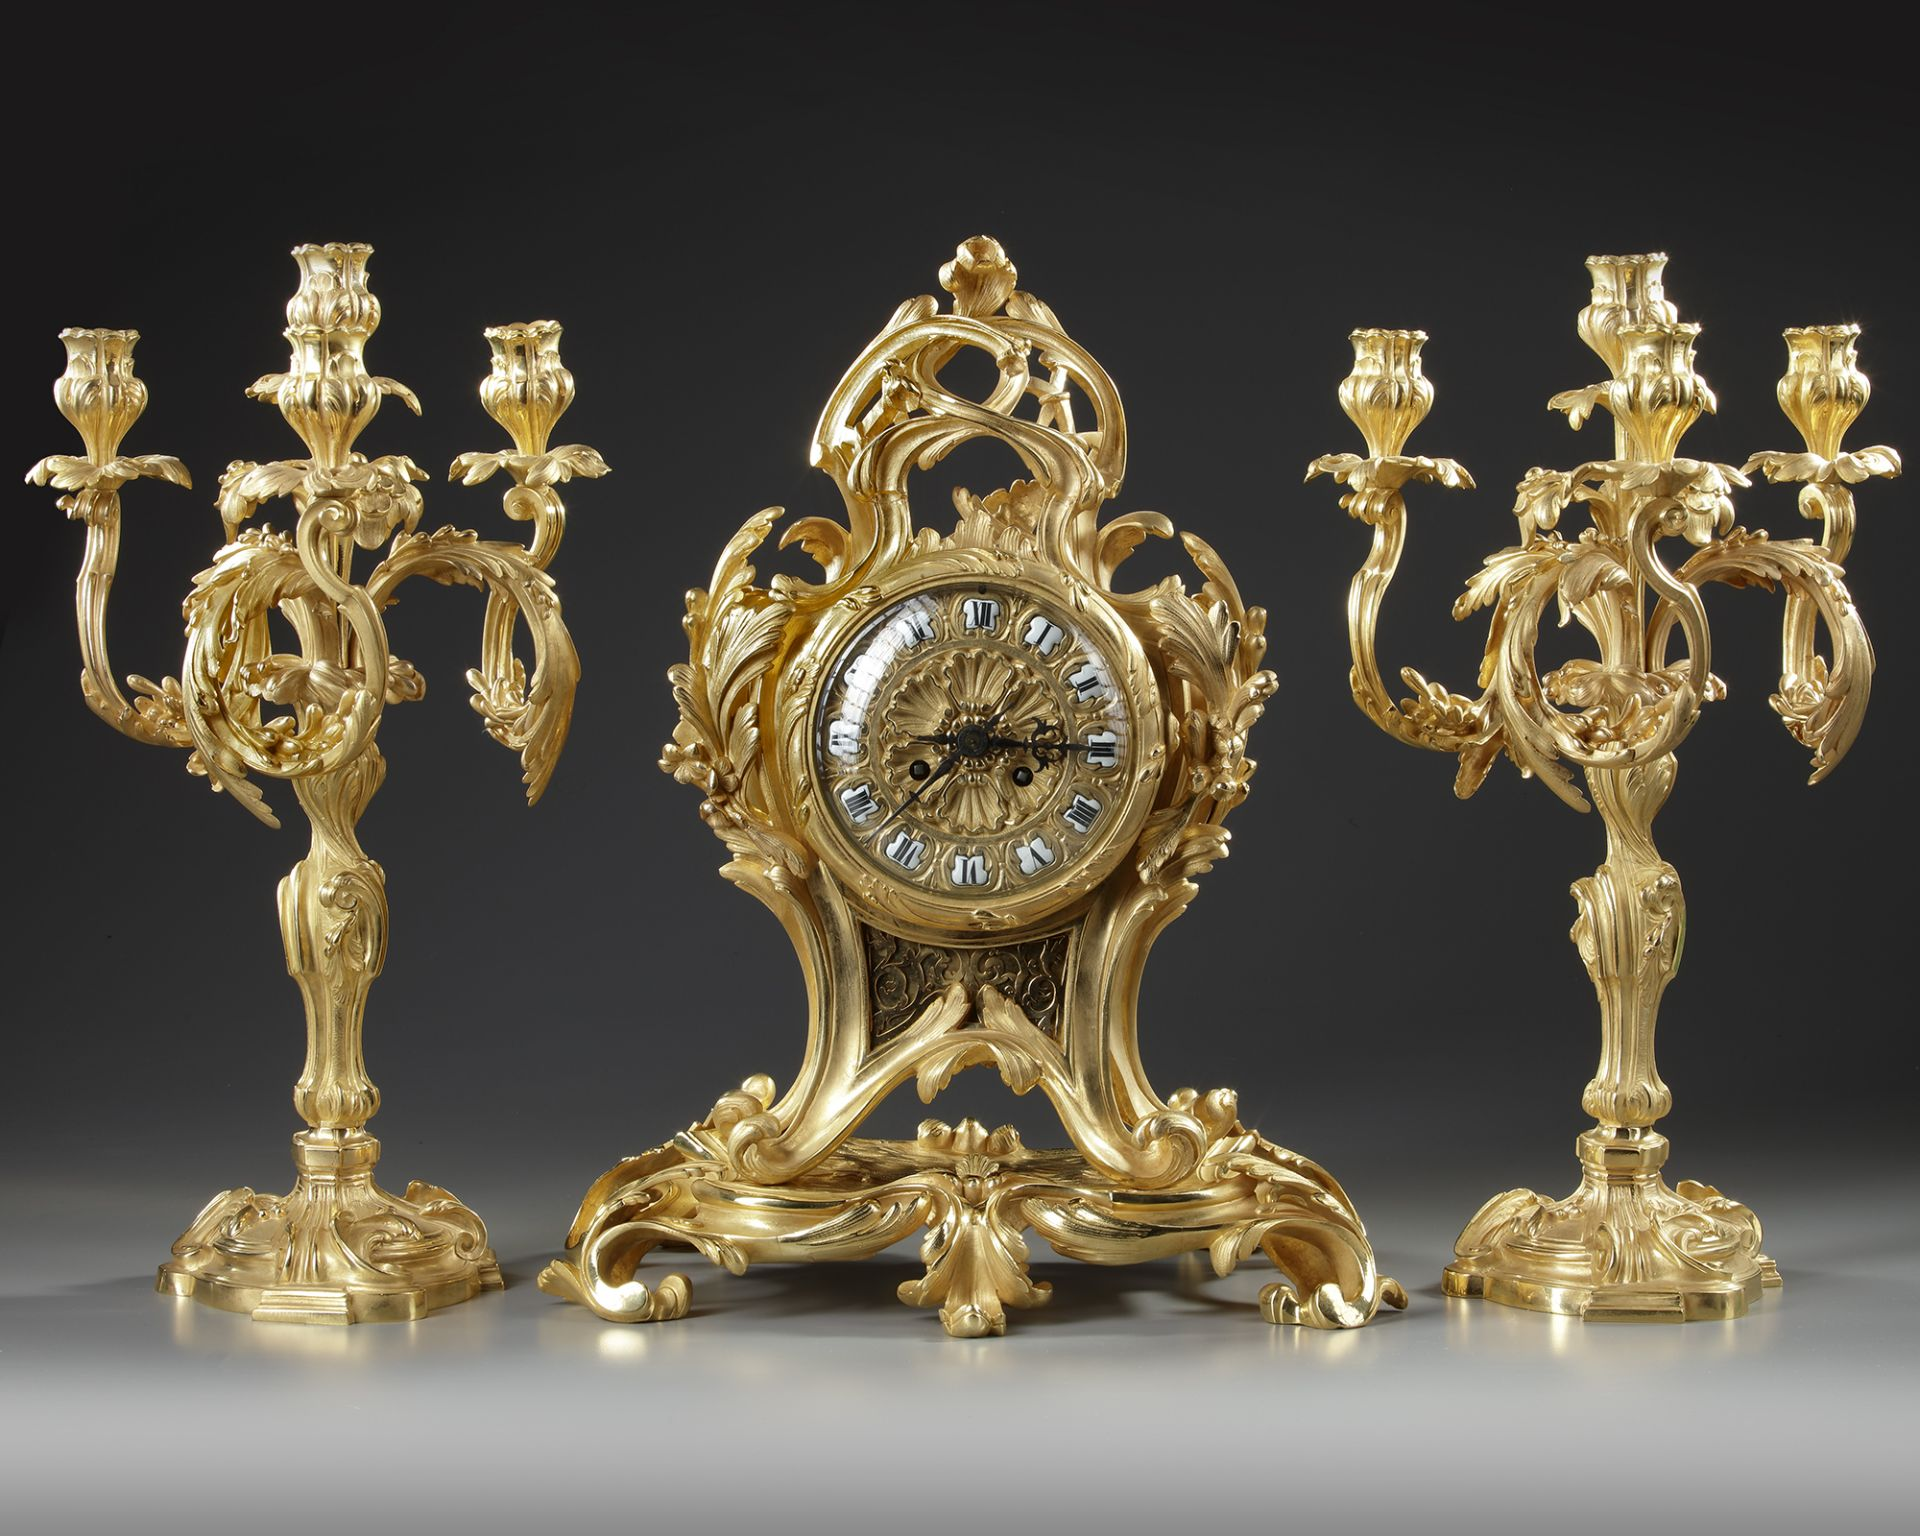 A FRENCH ORMOLU CLOCK SET, 19TH CENTURY